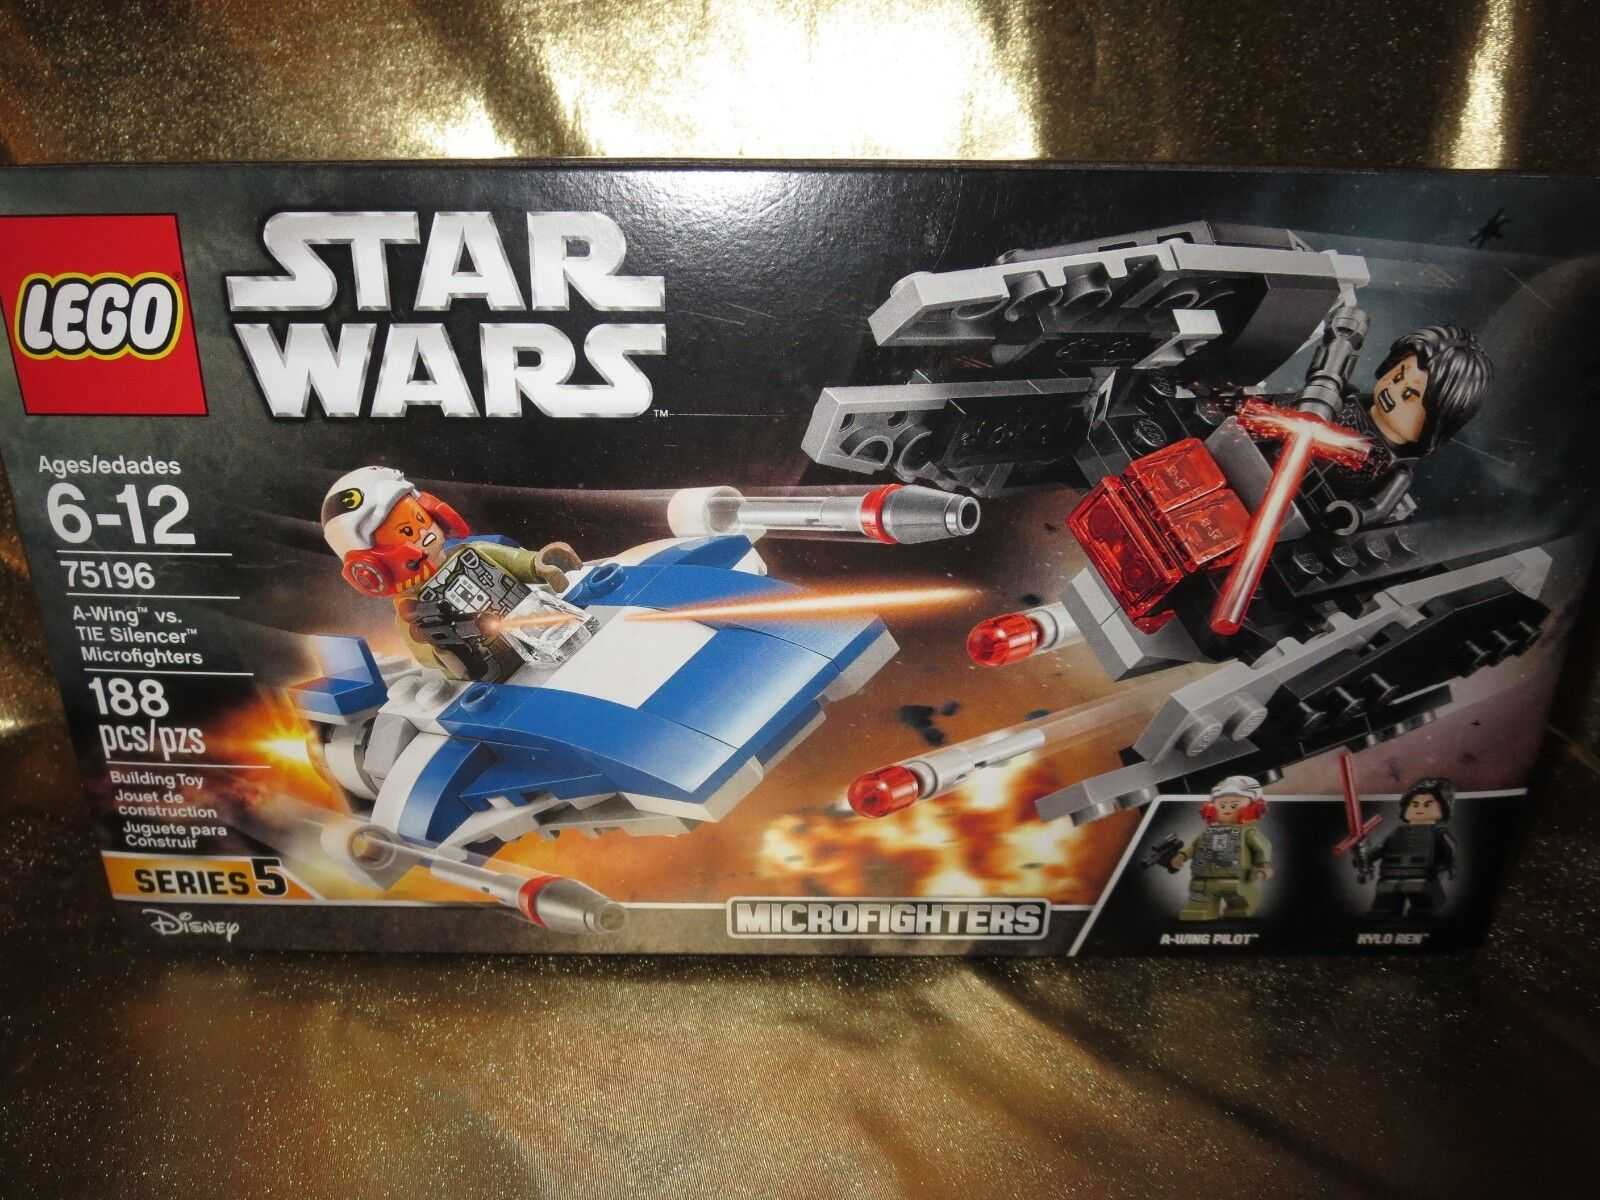 Star Wars A-Wing Krawatte Vs.Schalldämpfer Microfighters Lego Set 188 St.Neu